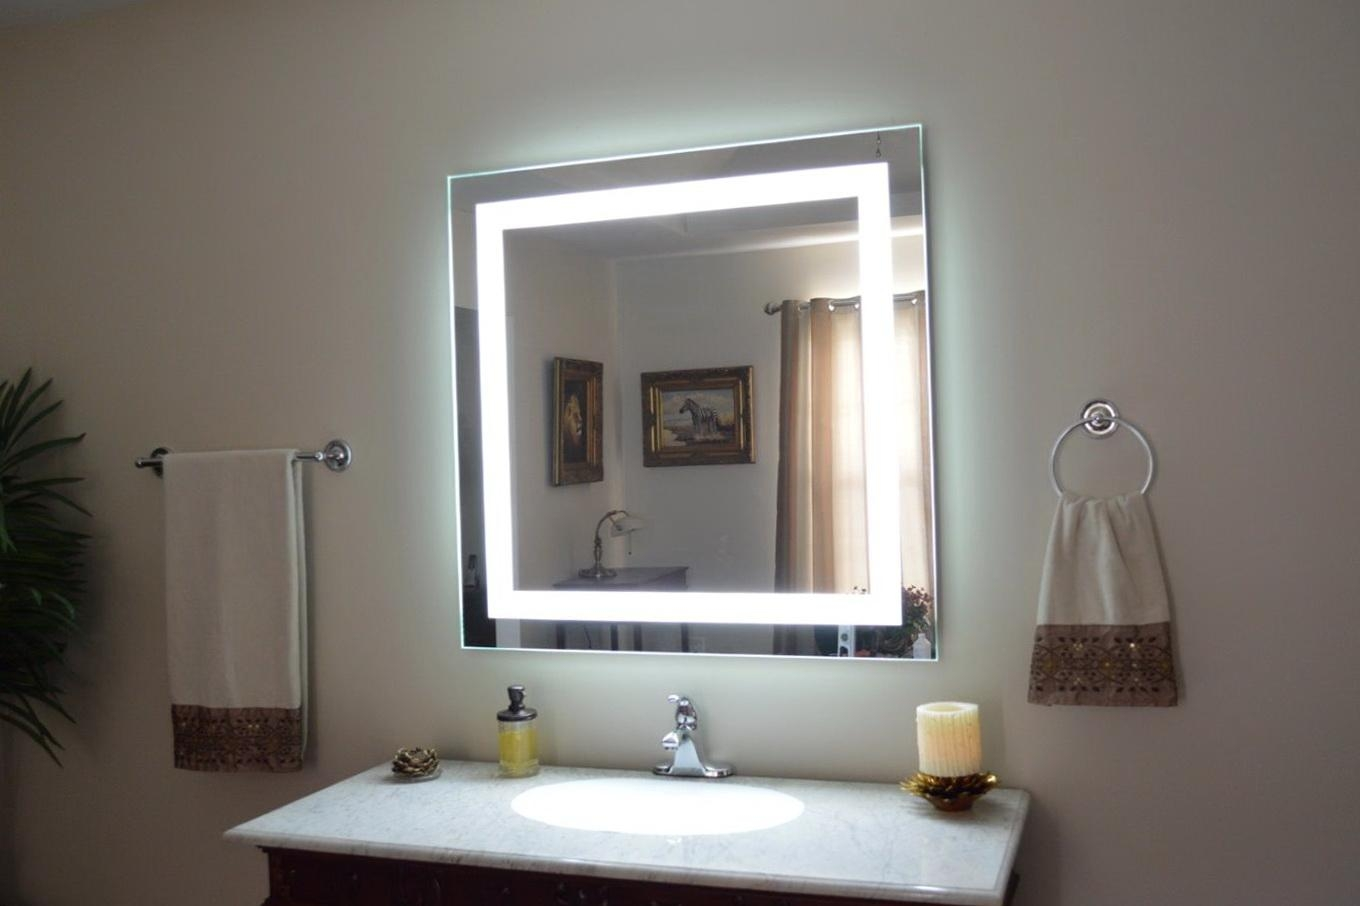 Bathroom Mirror With Lights : Lighted Bathroom Mirror Can Light Up Pertaining To Light Up Bathroom Mirrors (View 3 of 20)